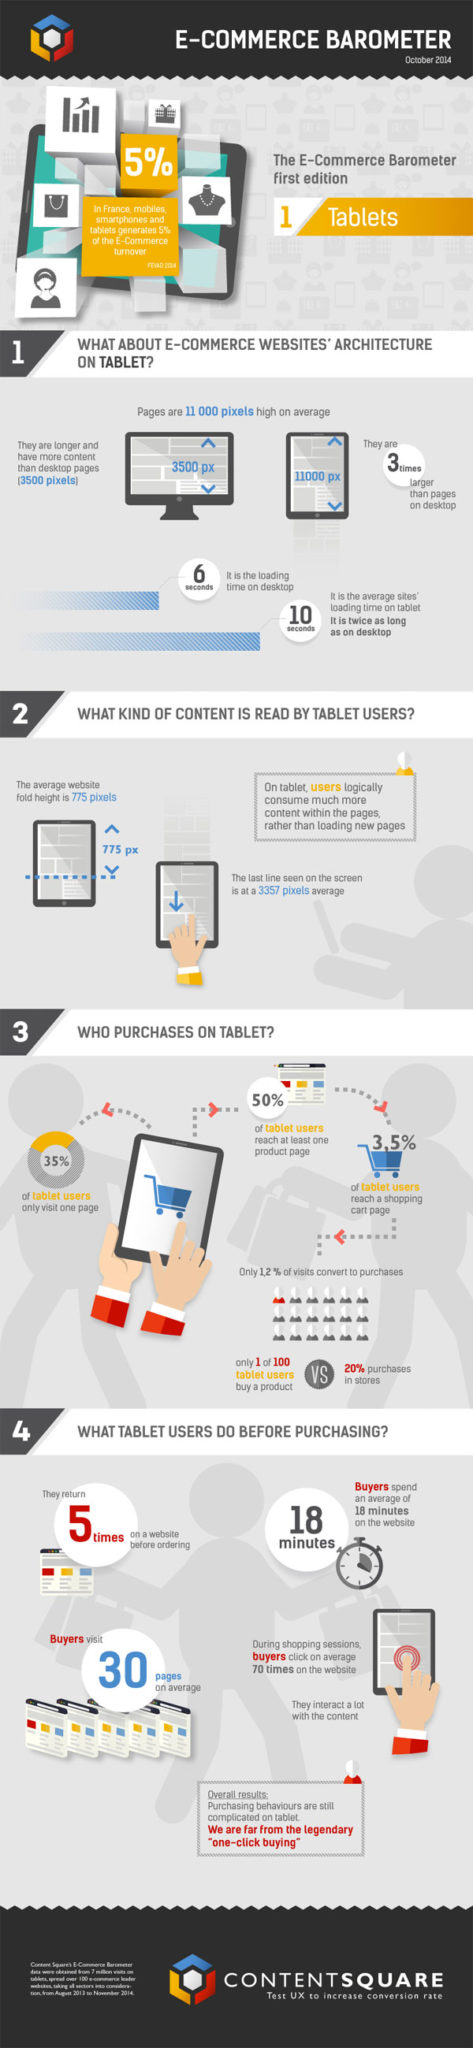 ecommerce-tablet-barometer-infographic